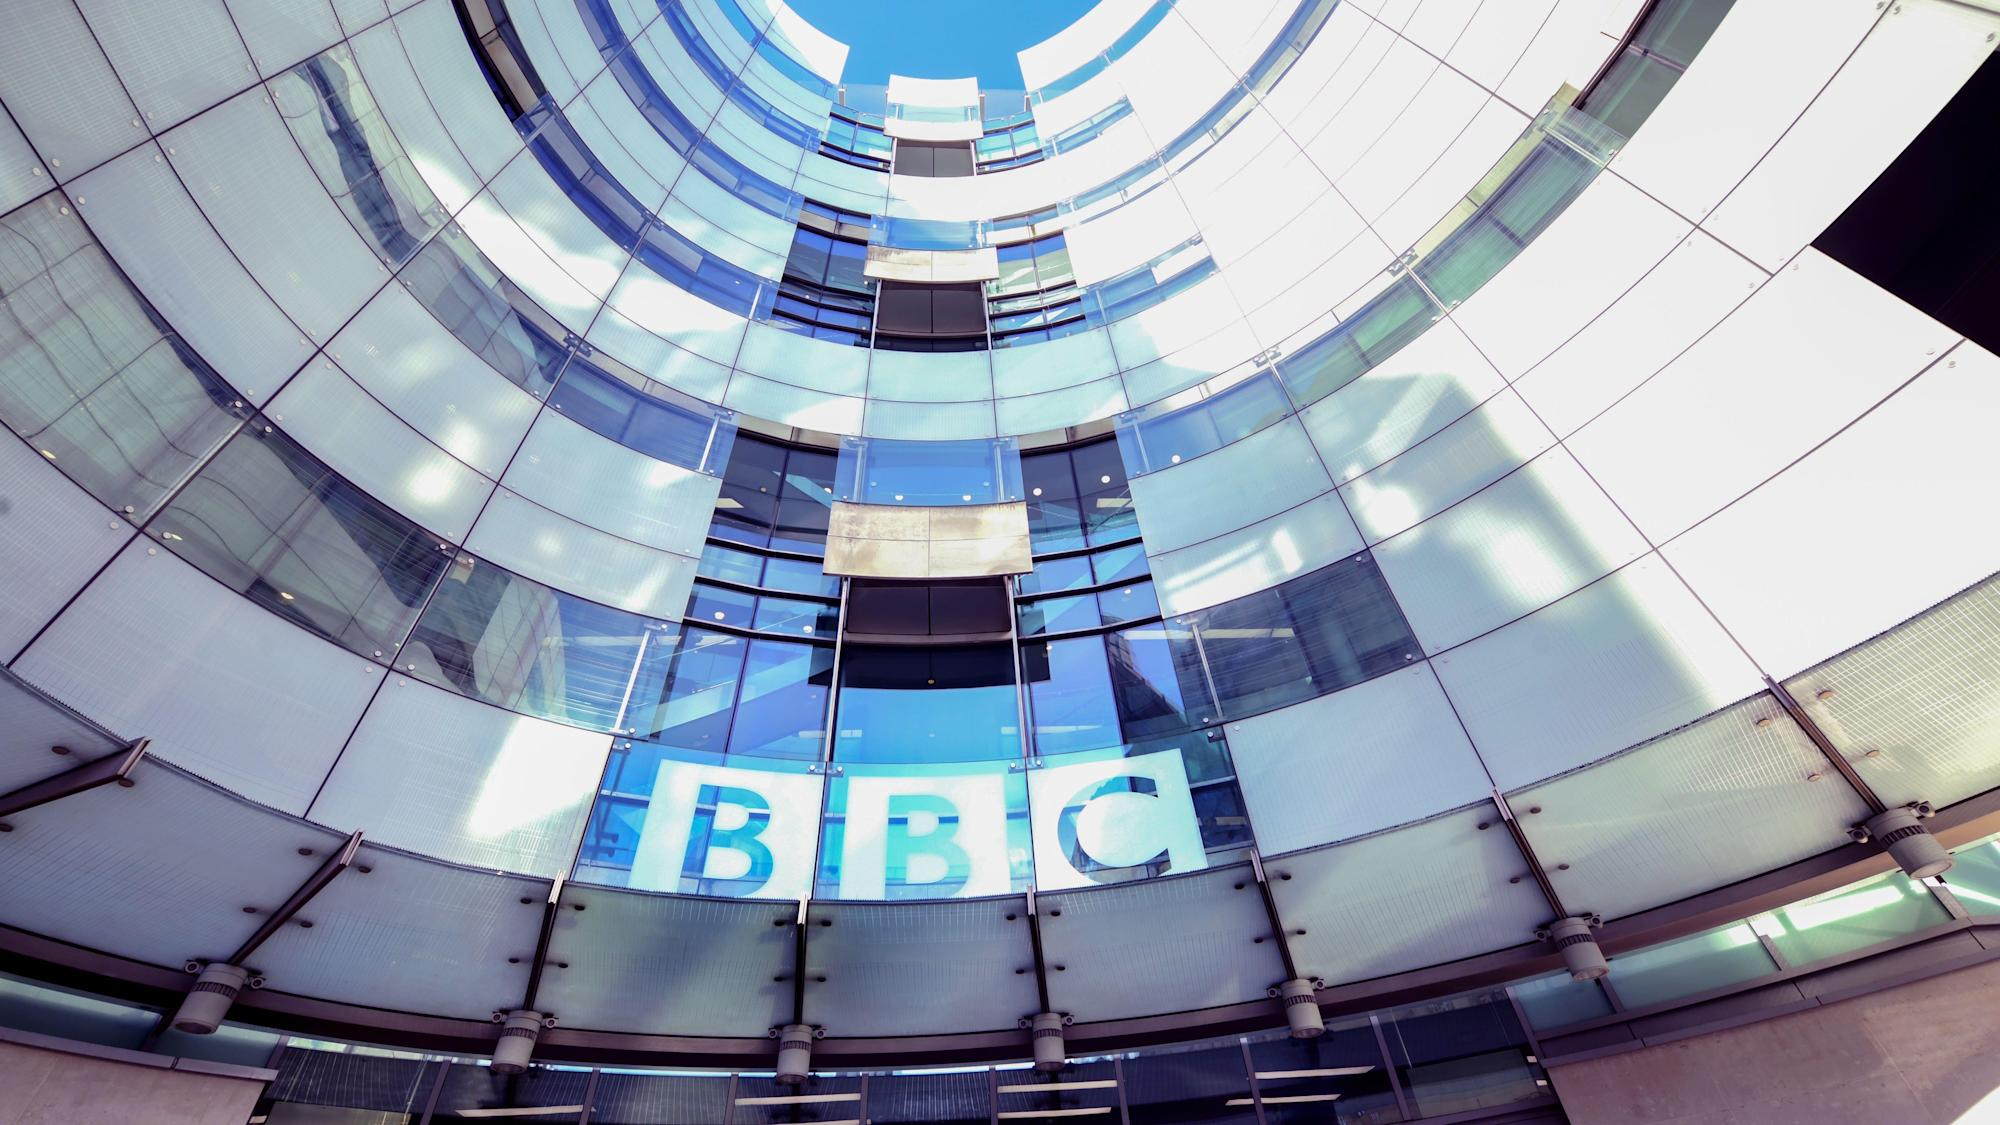 Record numbers regularly consumed BBC content last year, broadcaster says